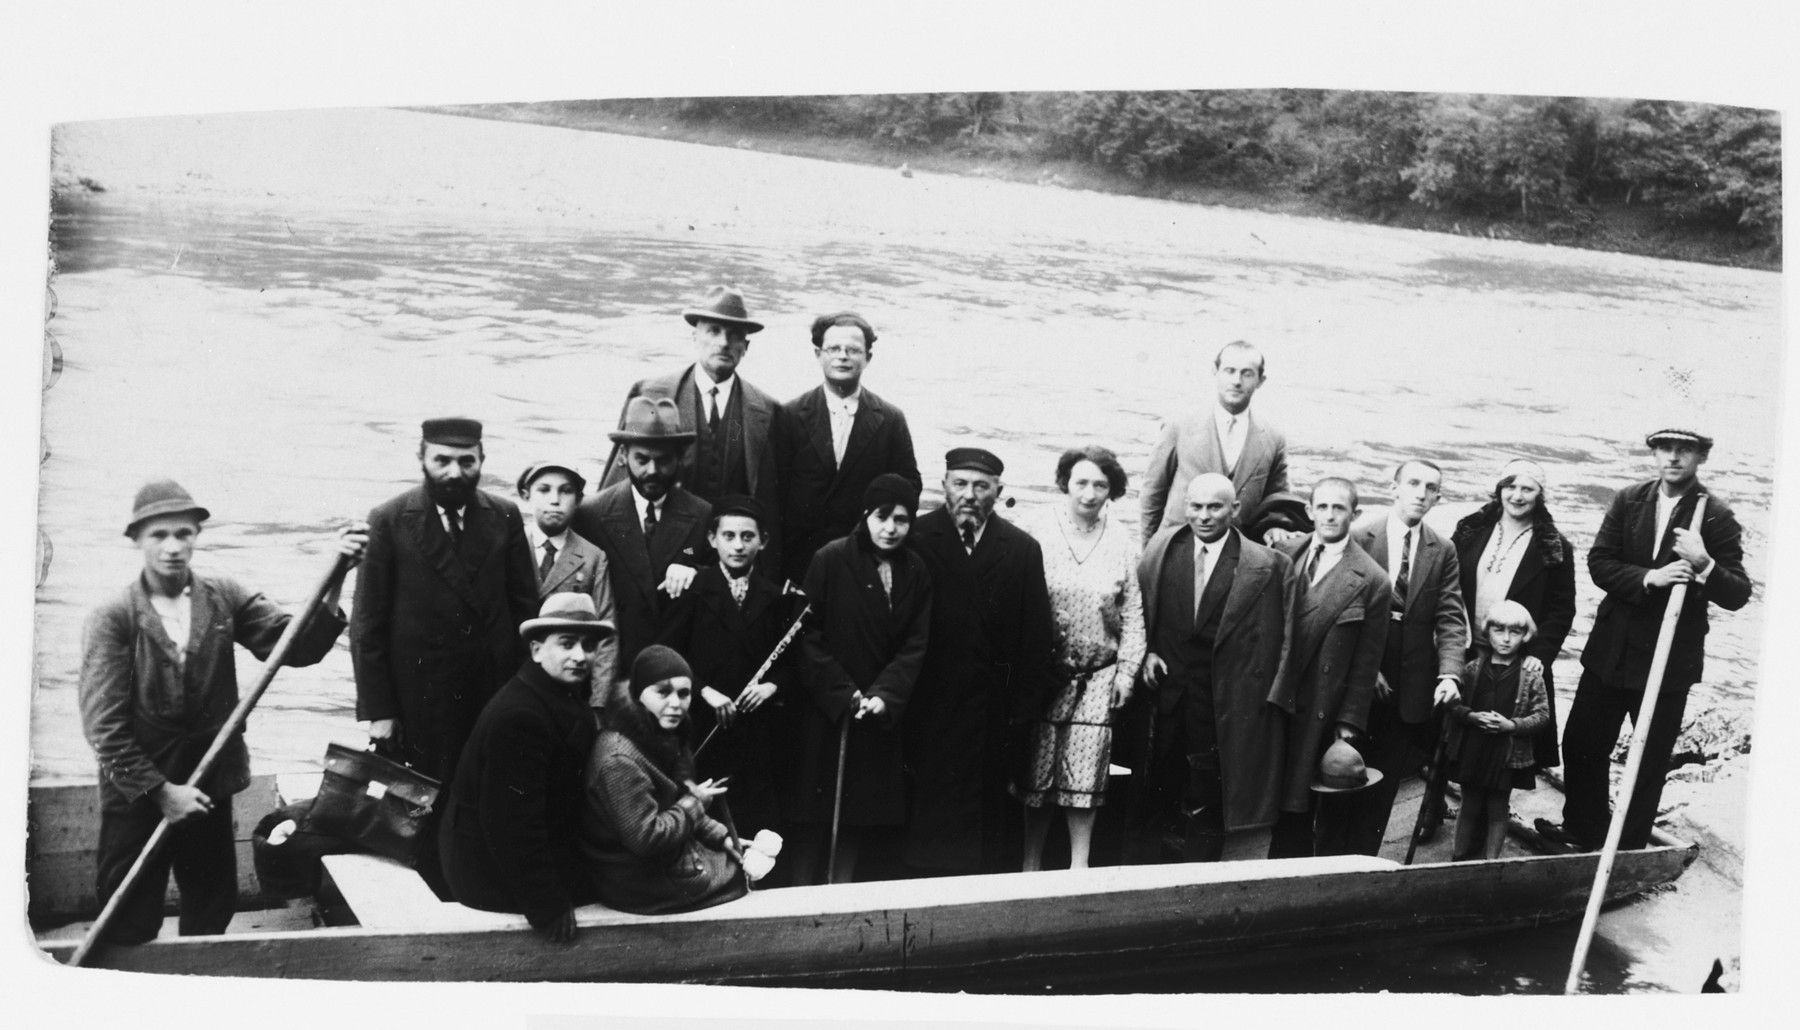 A group of Jewish friends goes on a boat excursion while vacationing in Otwock.  Lila's maternal grandfather Papier is in the center.